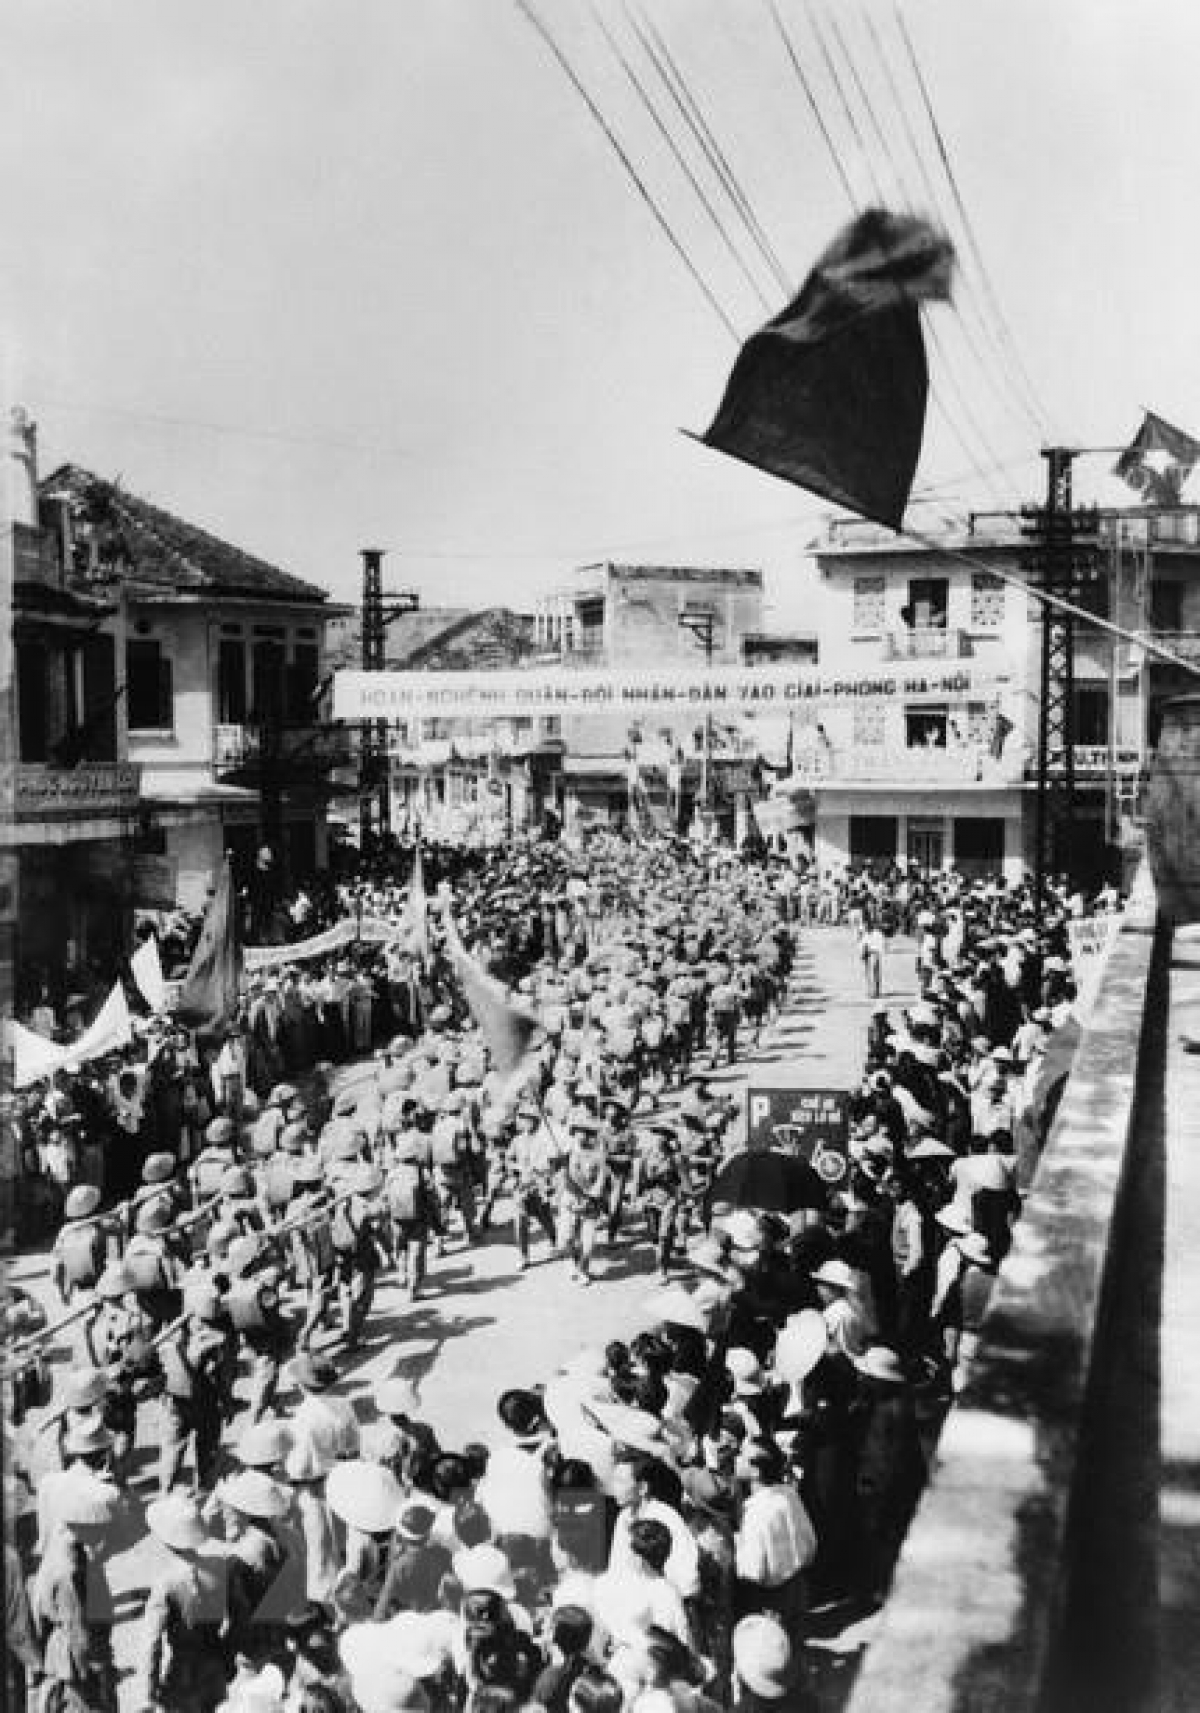 Approximately 200,000 residents bearing flags and flowers take to the streets to greet liberation forces. Pictured is the jubilant scenes on Hang Gai street.